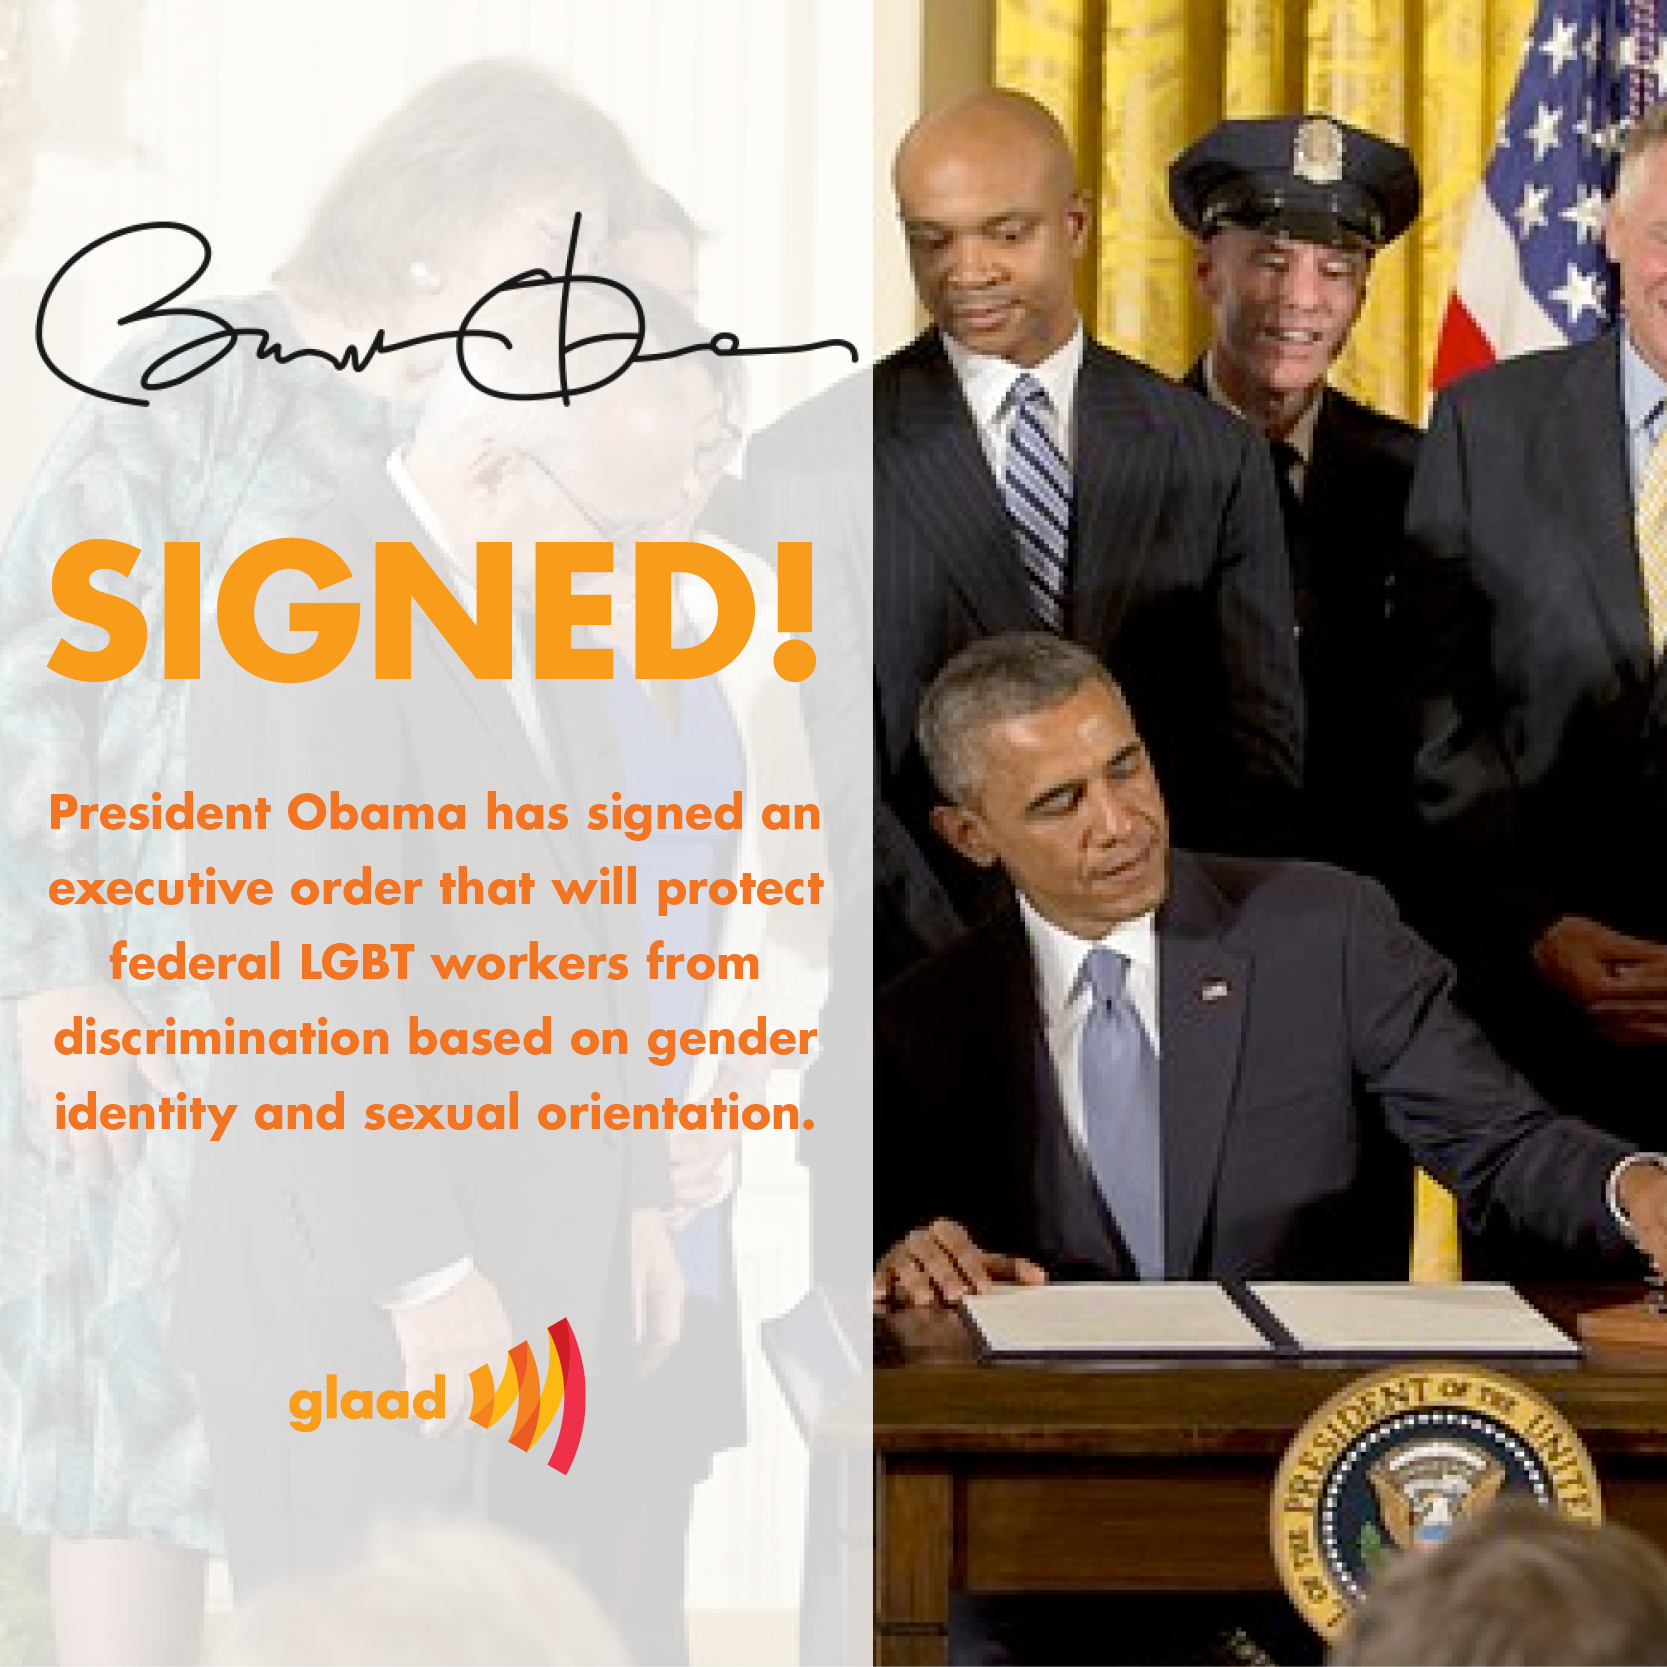 Executive Privilege And Presidential Aides: President Obama Signs Executive Order Protecting LGBT